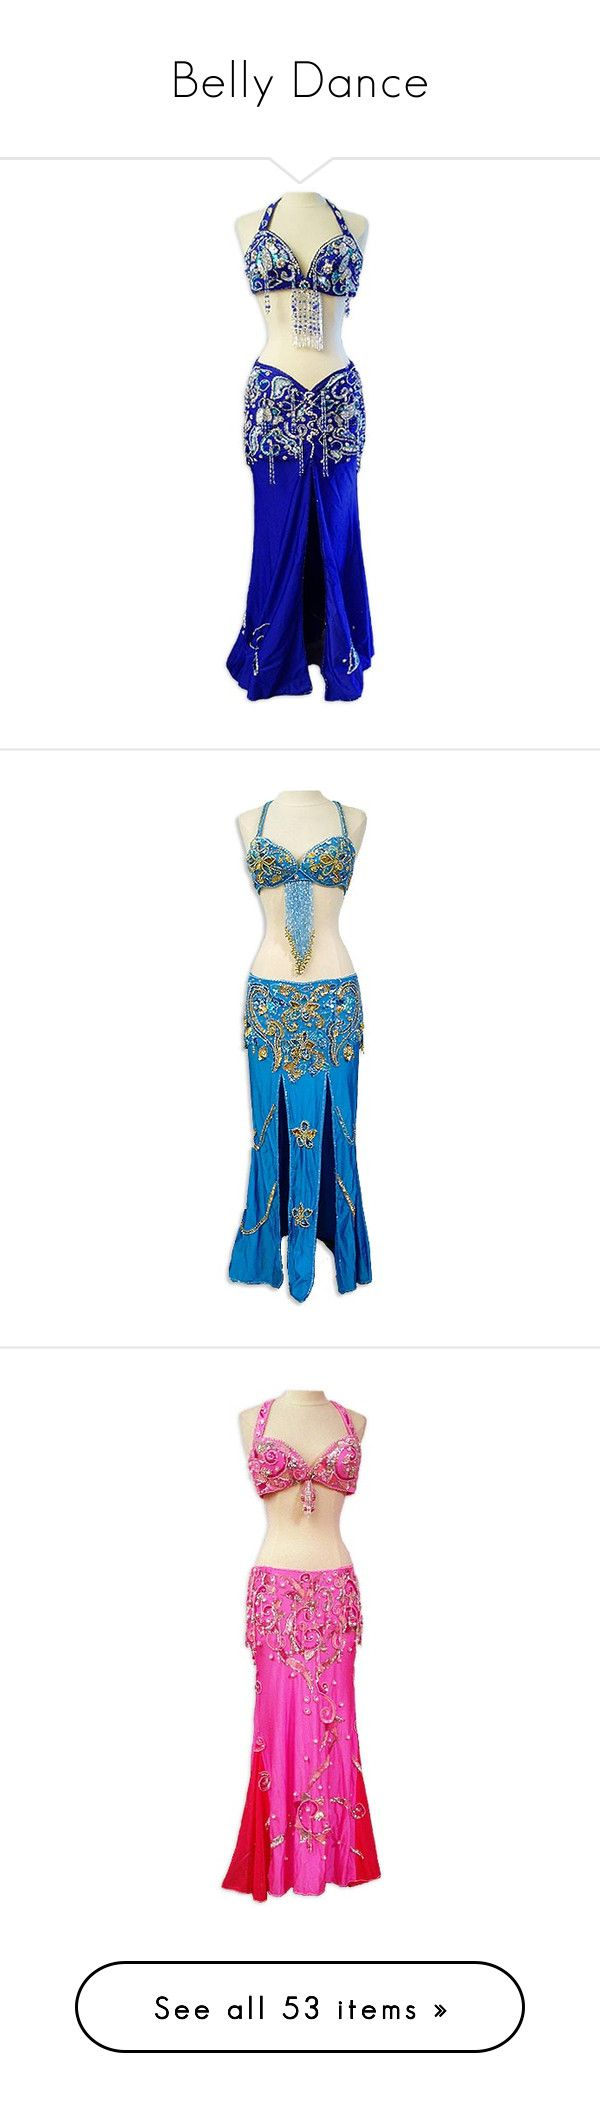 """Belly Dance"" by yukihanatora ❤ liked on Polyvore featuring costumes, dresses, belly dancing, dance, belly dance, blue costume, silver costume, blue belly dancer costume, belly dancer halloween costume and silver halloween costume"